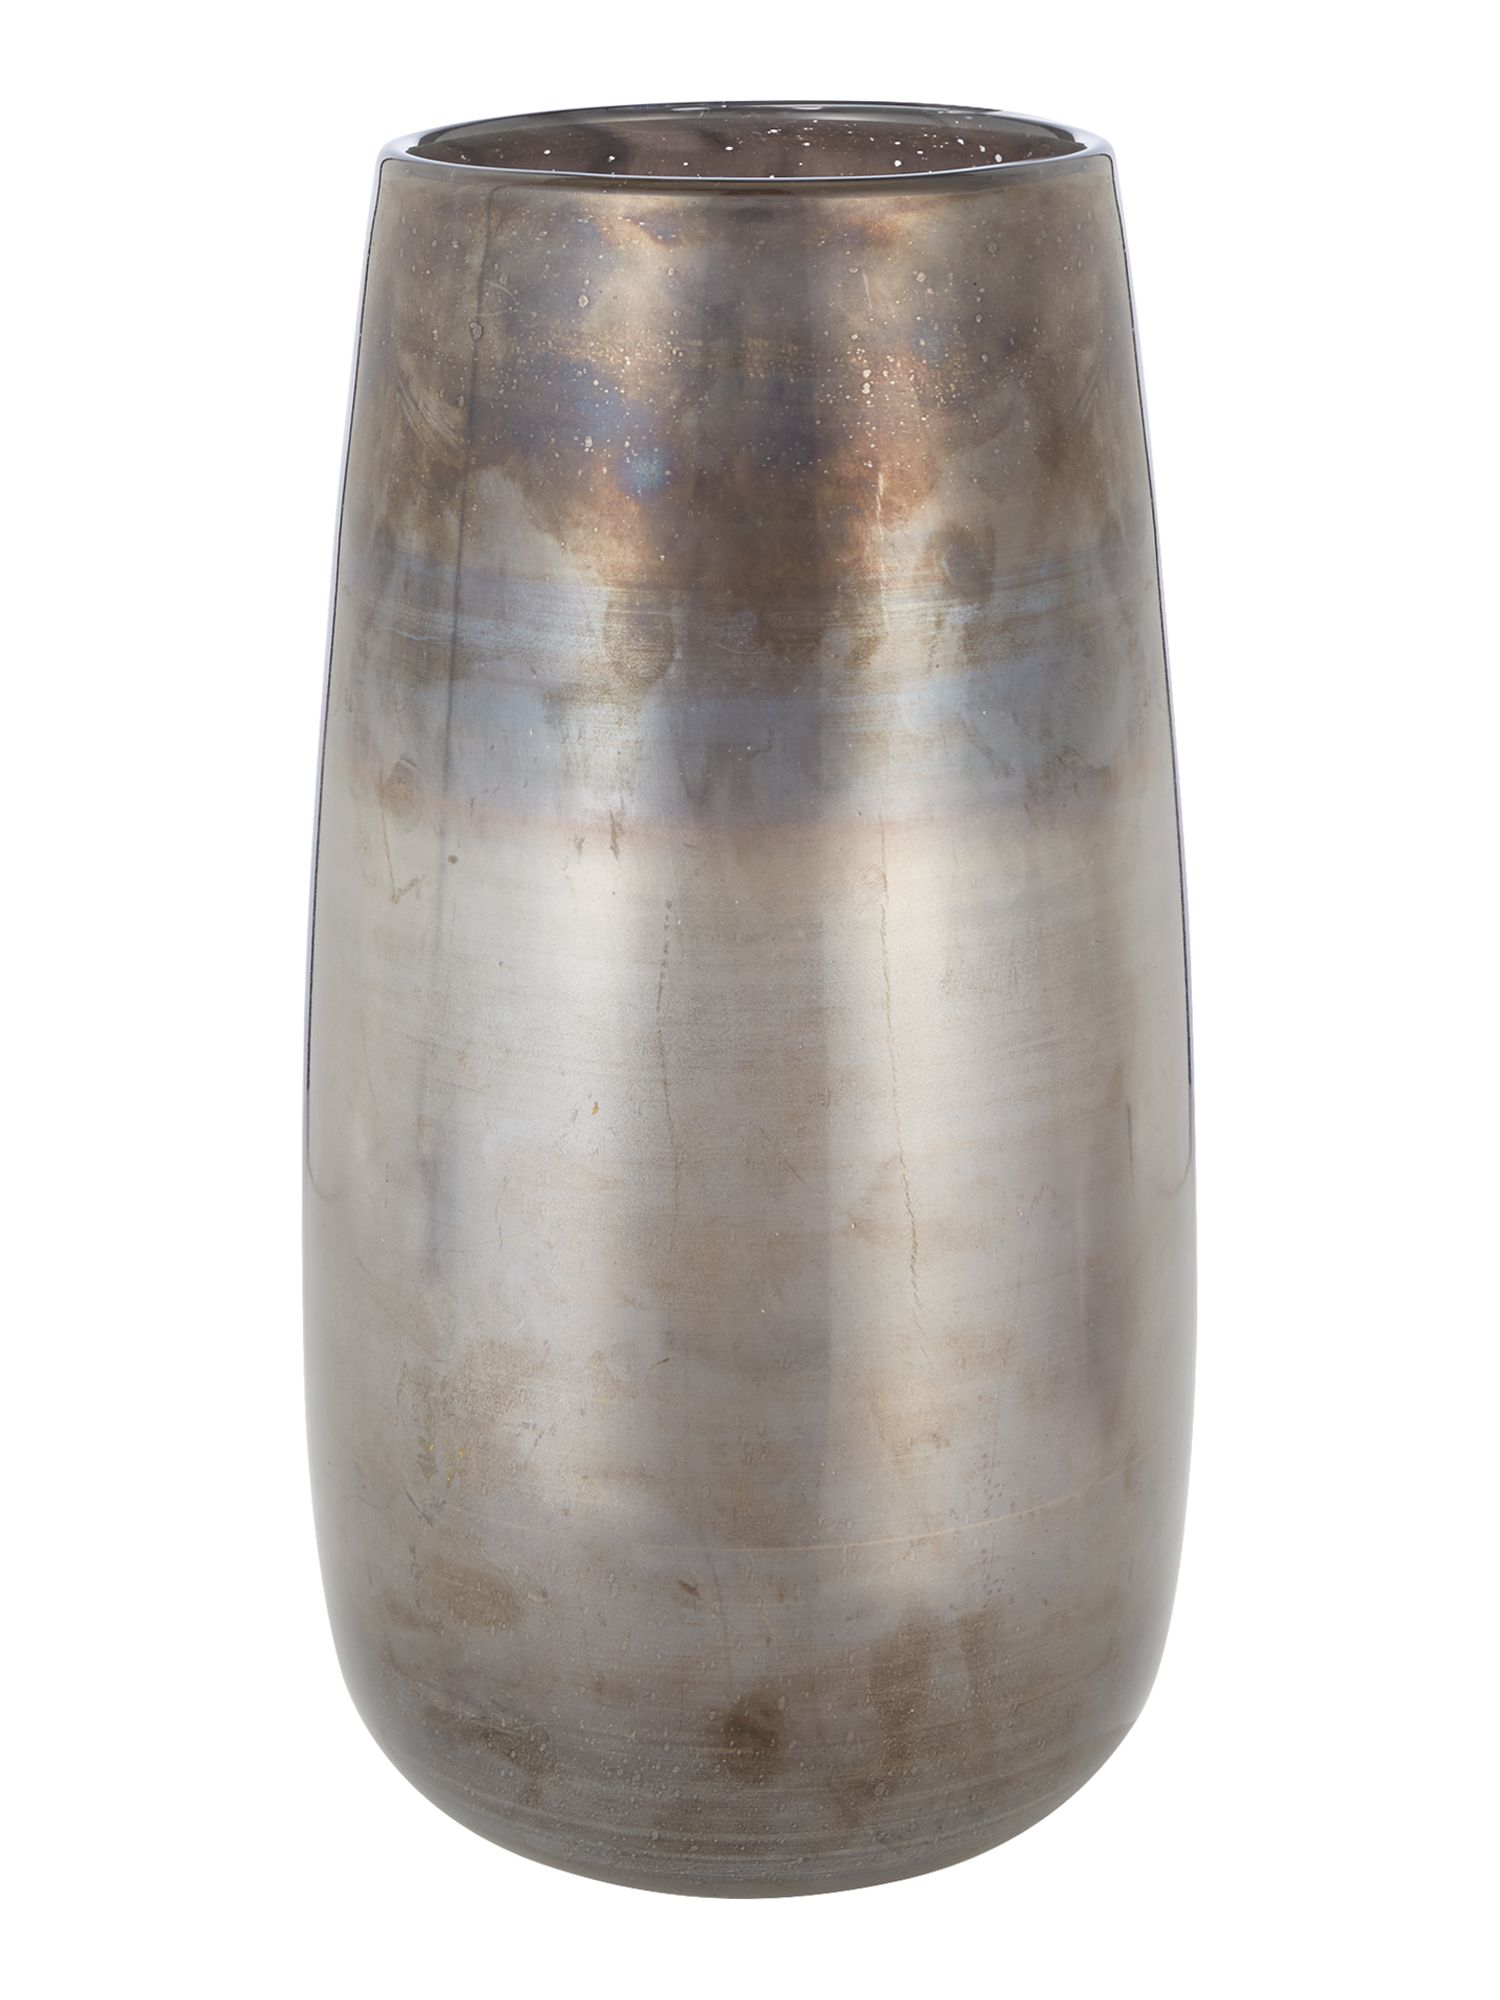 Casa Couture Casa Couture Moon pearlised tall vase